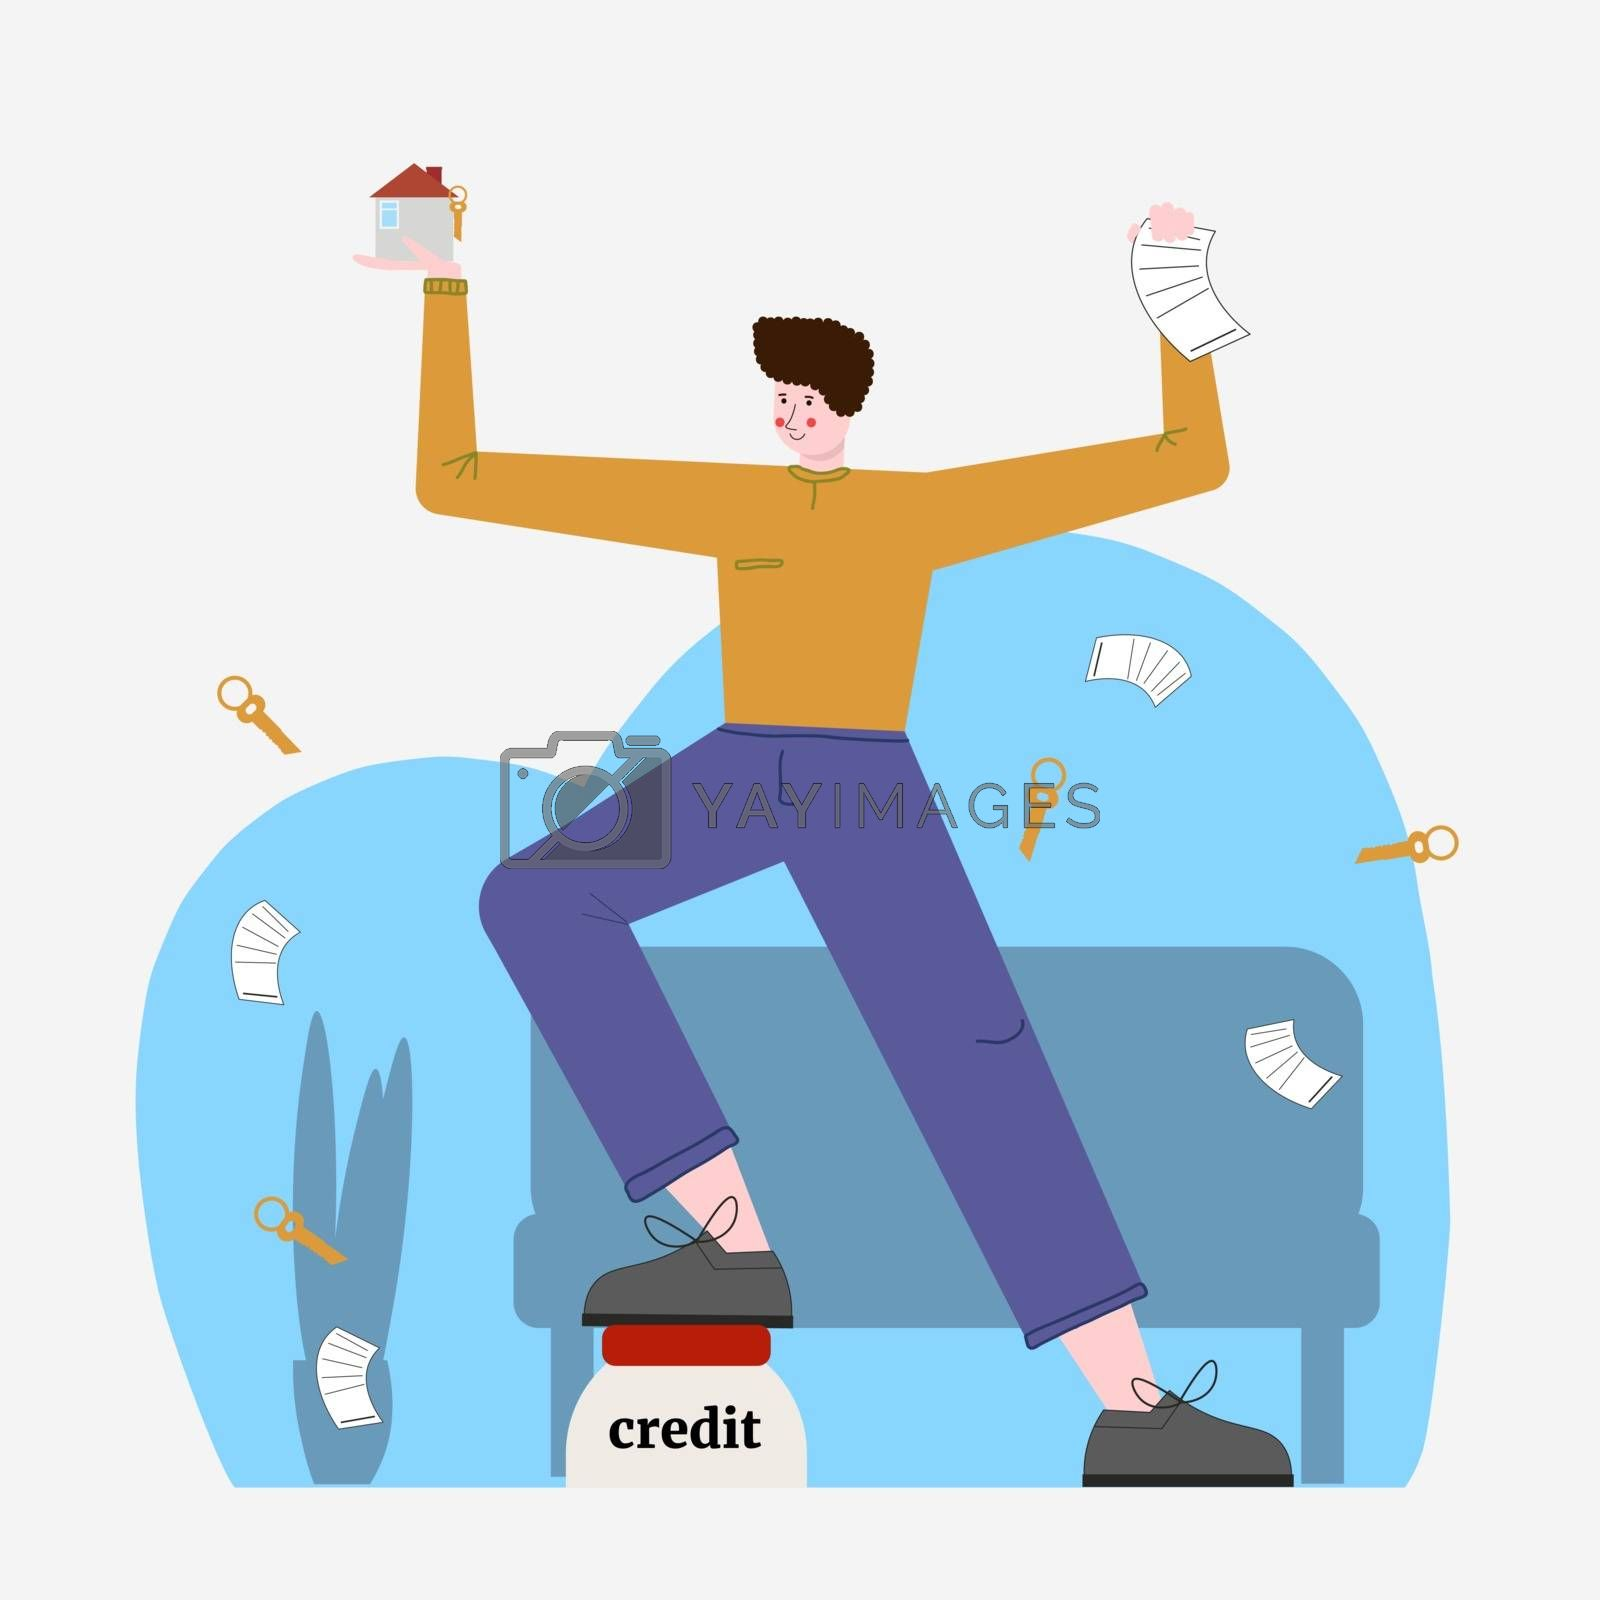 a cartoon man took out a loan at home. Mortgage and financial management concept. Banking, real estate investment. Flat vector illustrations for web pages and advertising by zaryov